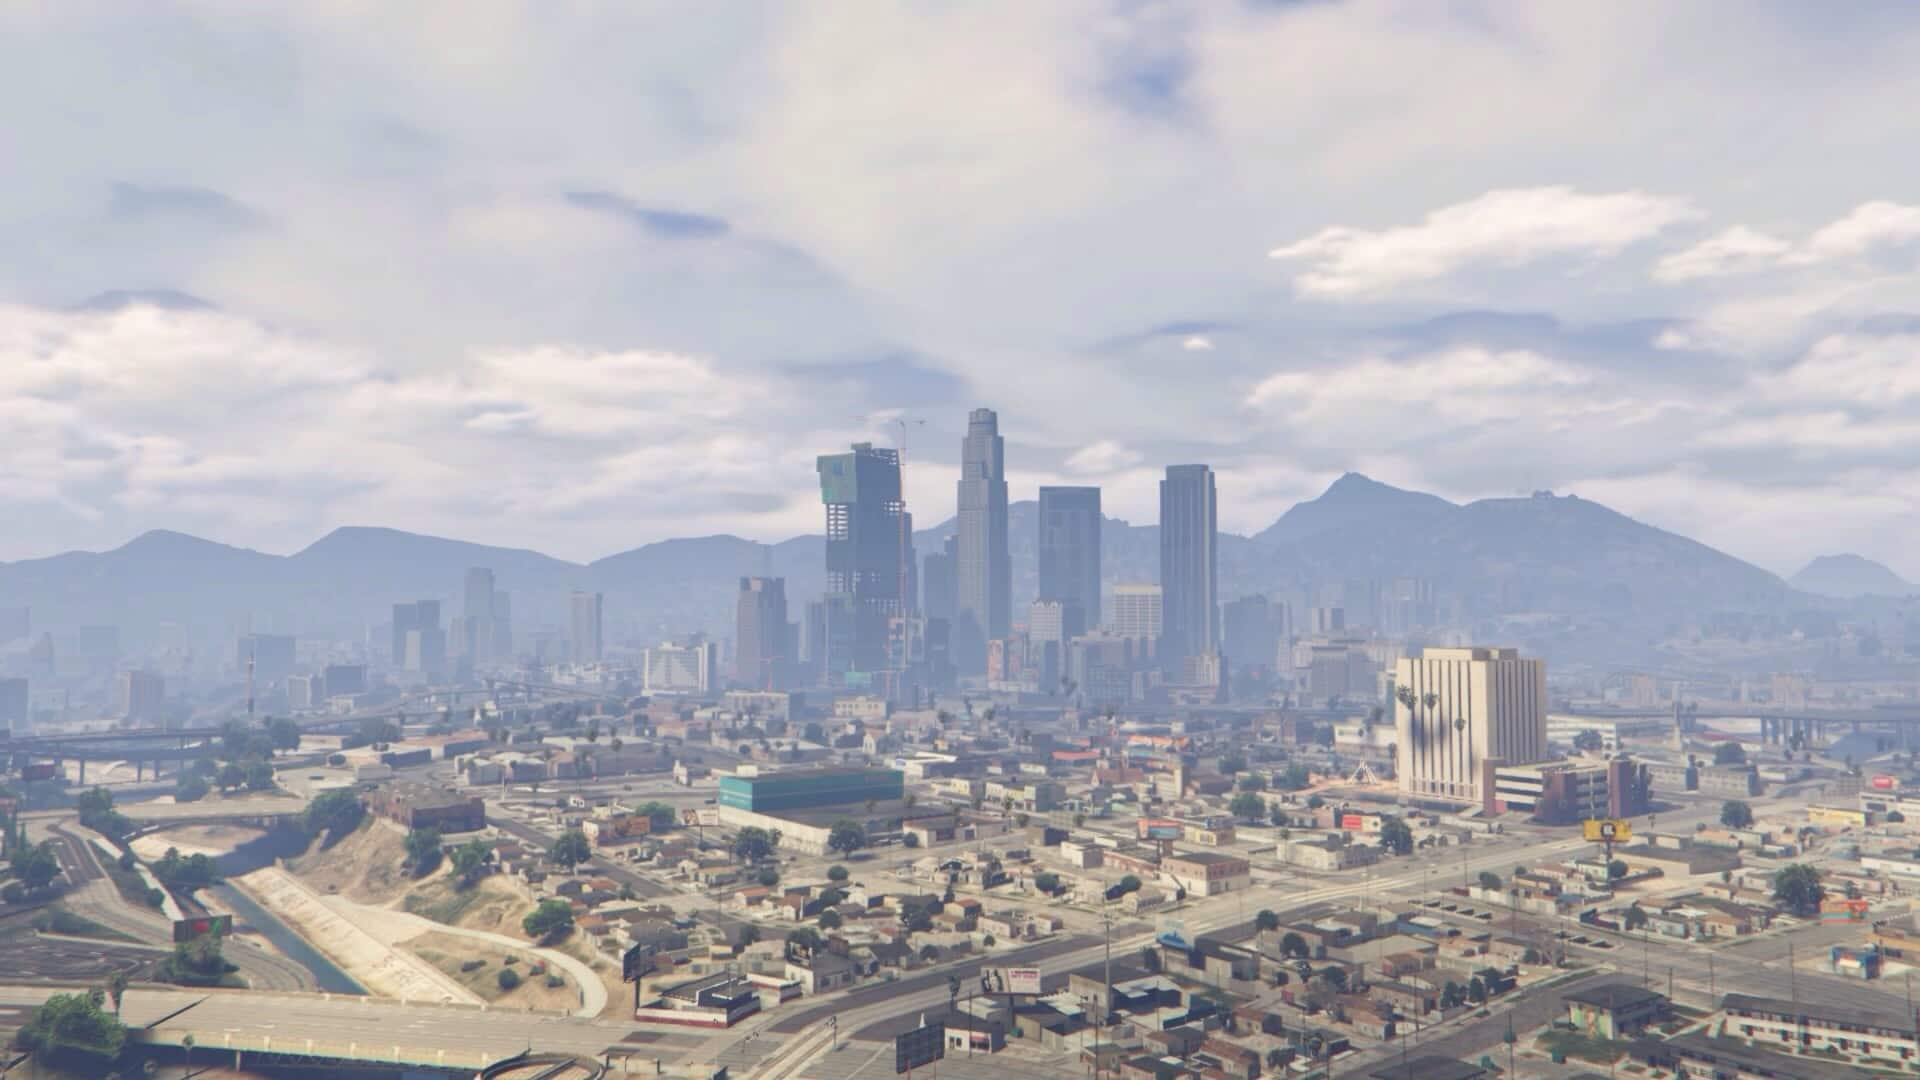 The Real Landmarks Of Grand Theft Auto 5's Los Santos